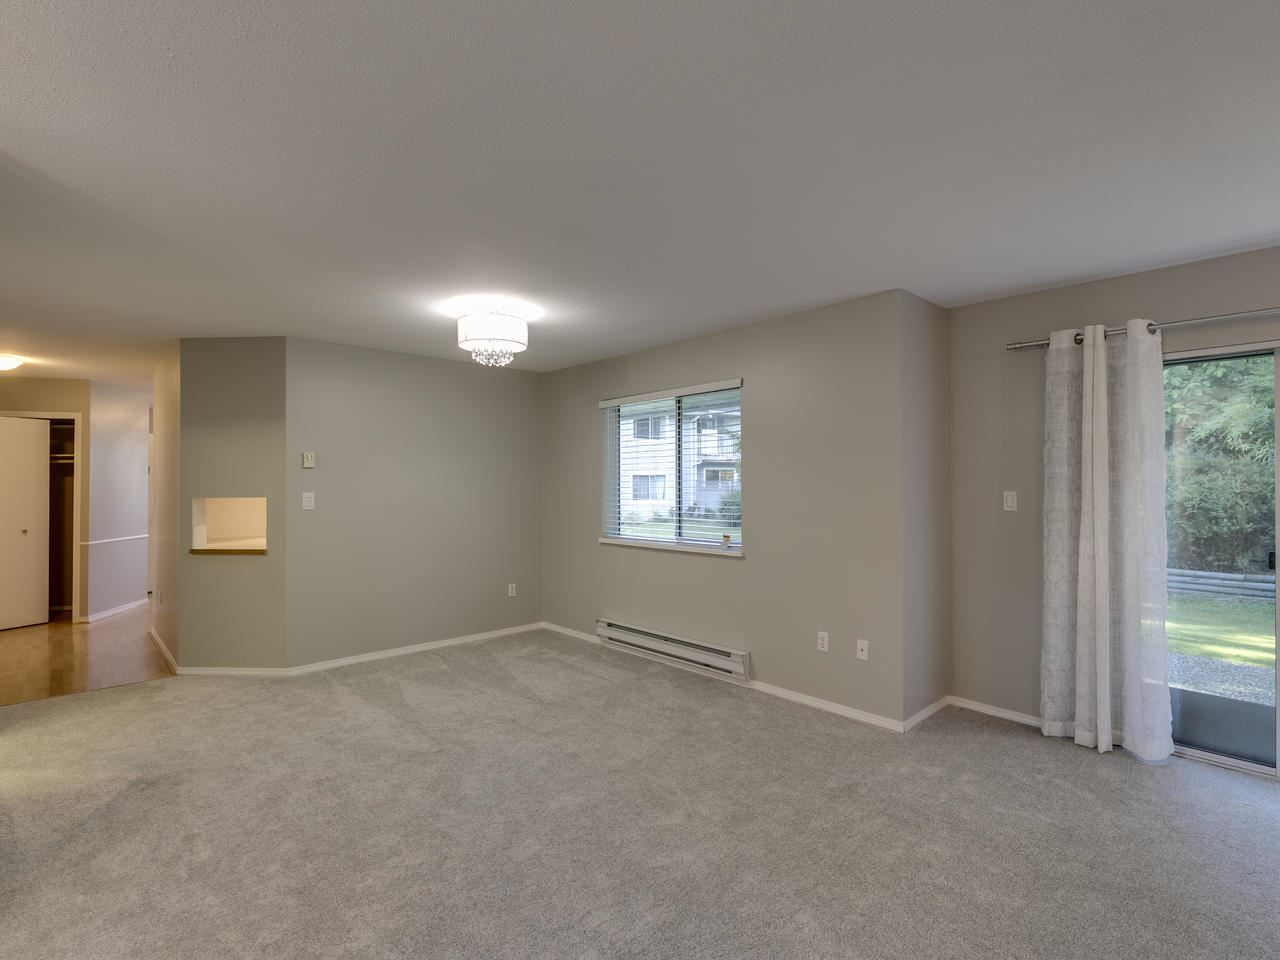 """Photo 16: Photos: 127 22555 116 Avenue in Maple Ridge: East Central Townhouse for sale in """"HILLSIDE"""" : MLS®# R2493046"""